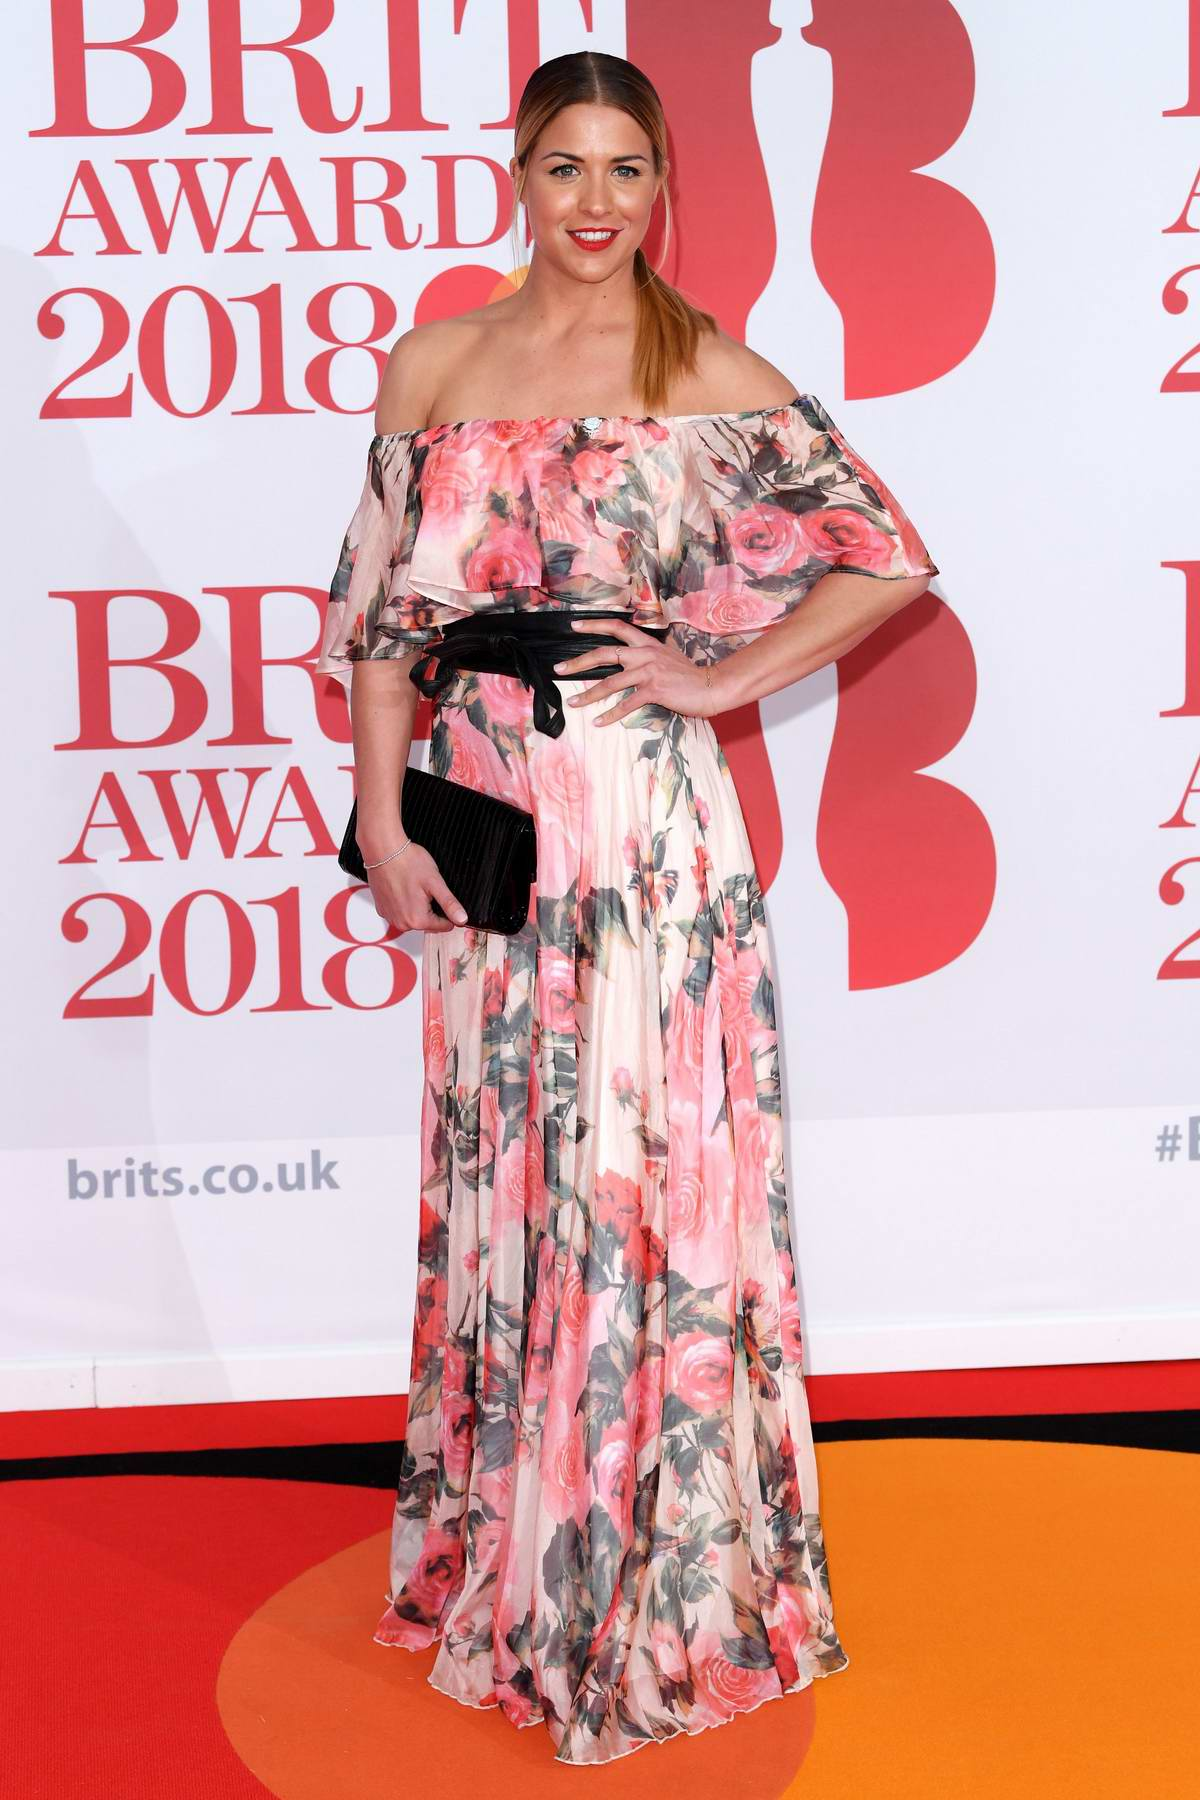 Gemma Atkinson attends the 38th Brit Awards, held at the O2 Arena in London